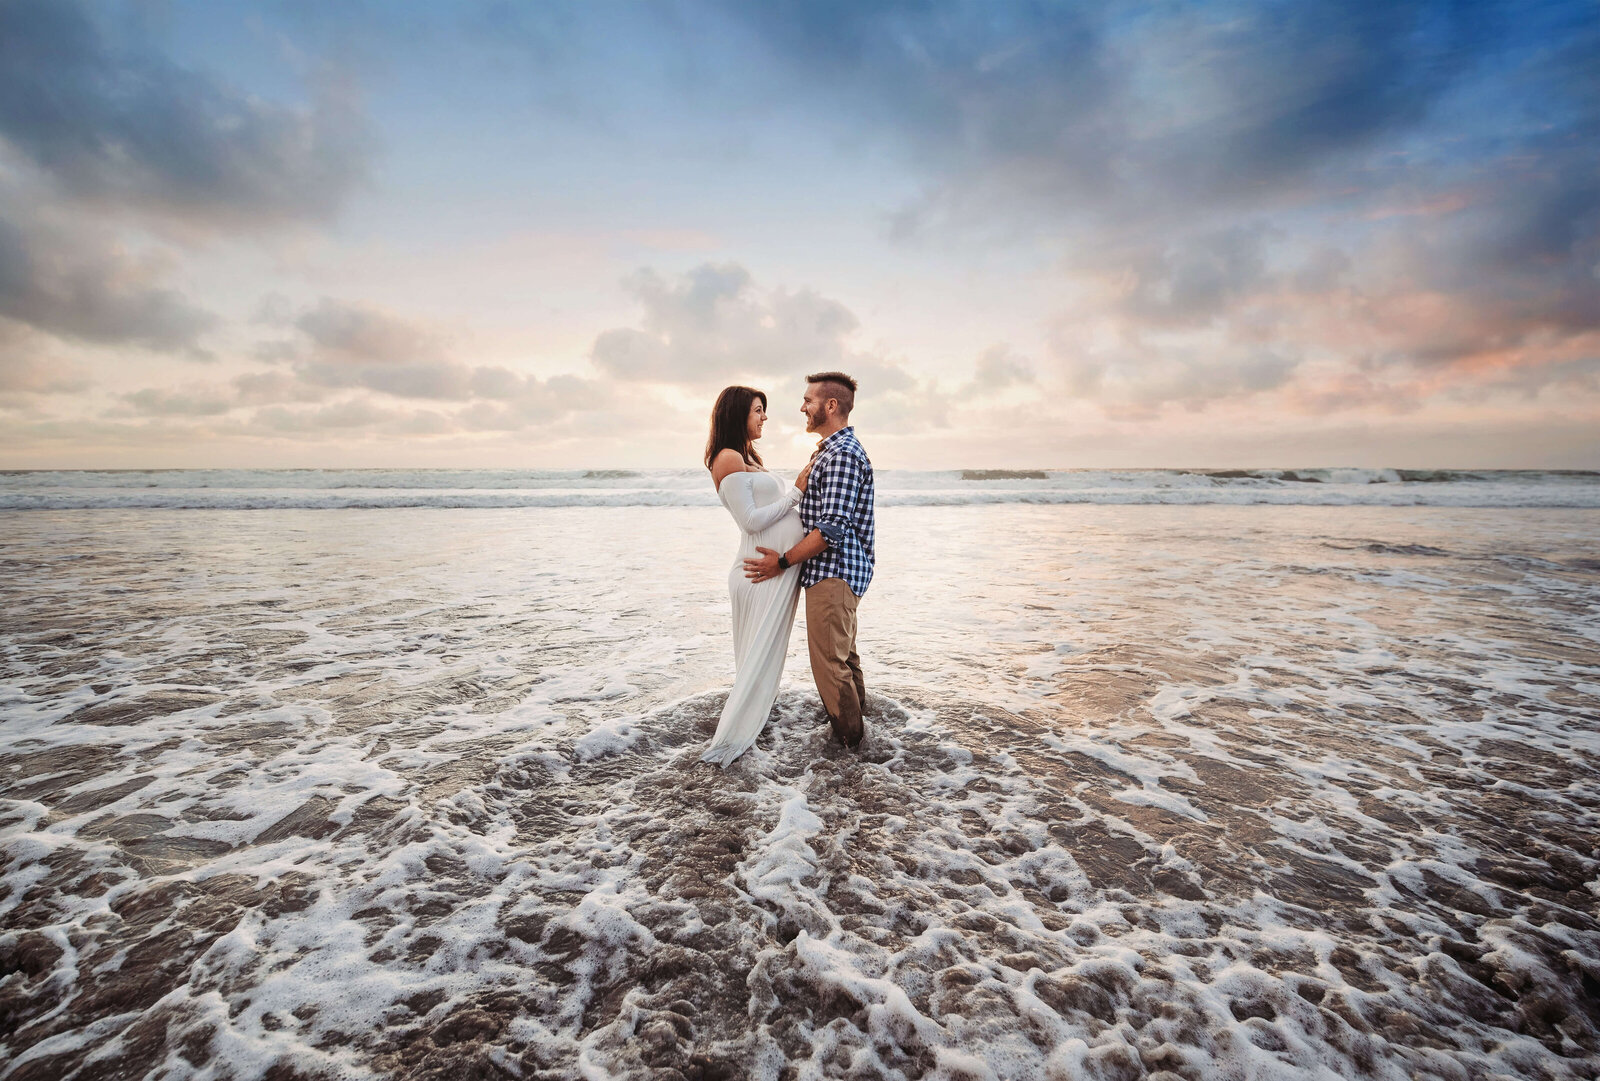 San-diego-maternity-photographer-38